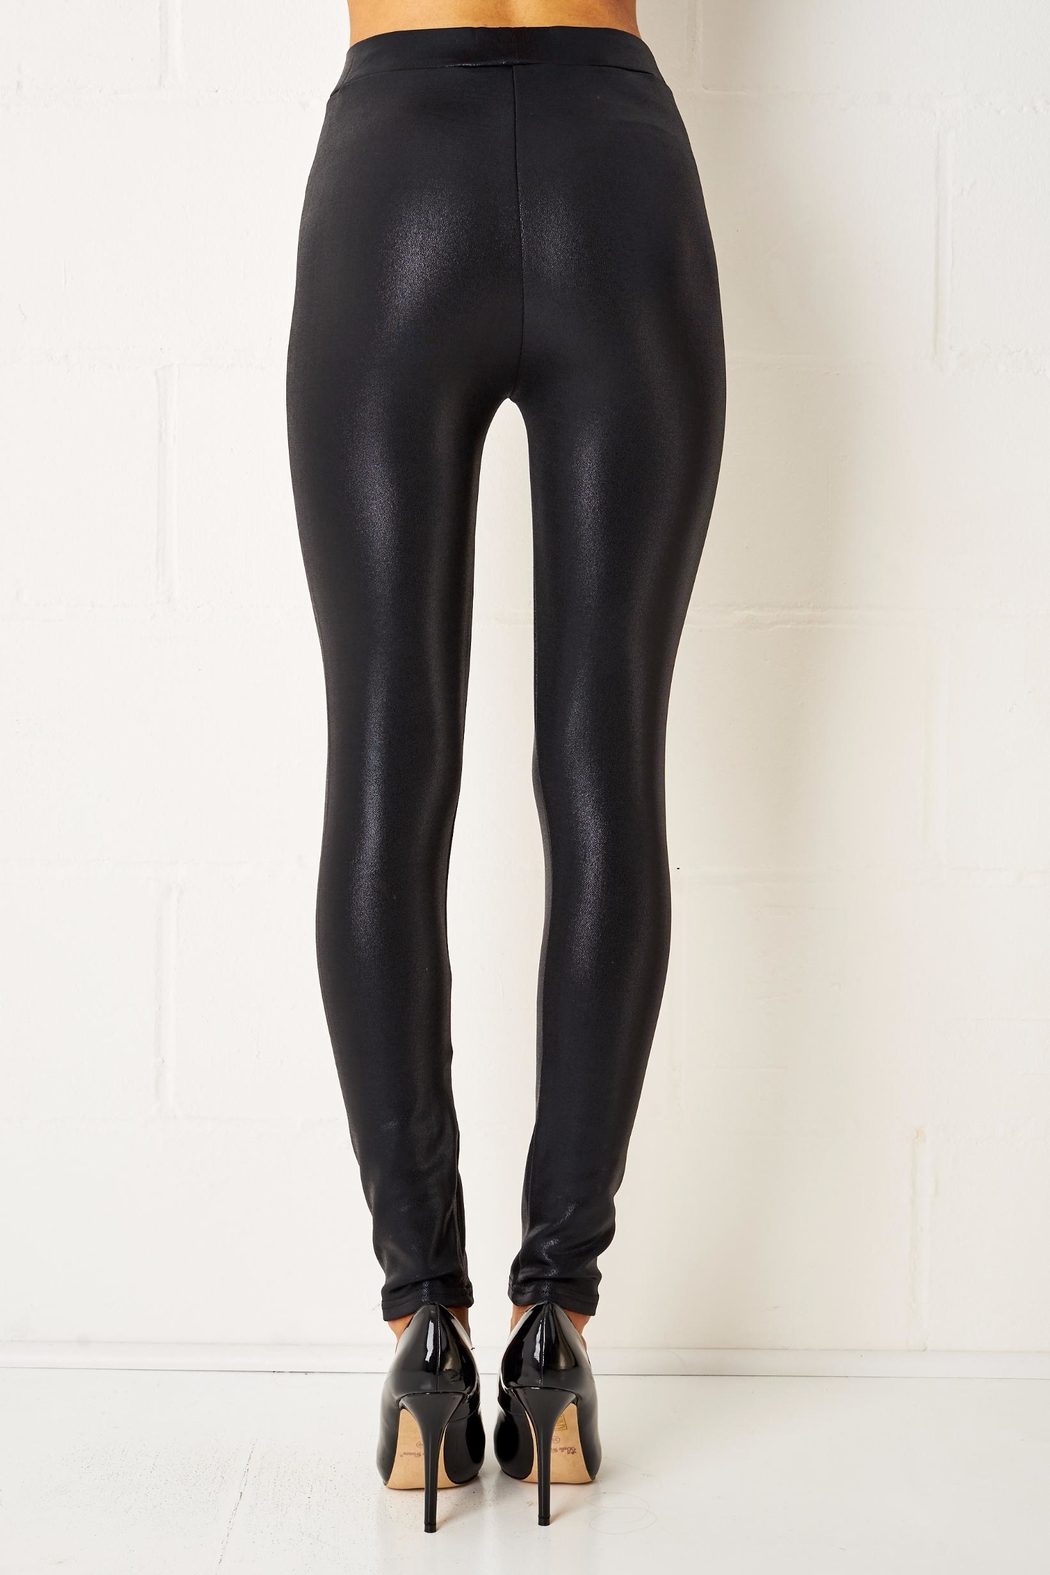 frontrow Stretch Shiny Leggings - Side Cropped Image